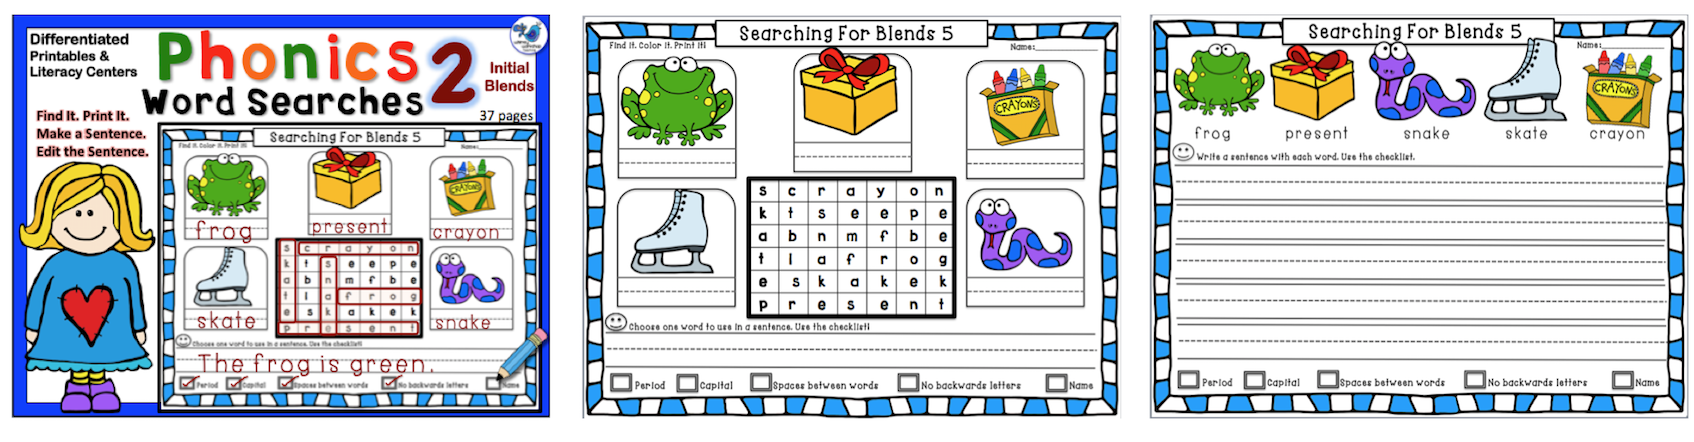 Phonics Word Searches 2